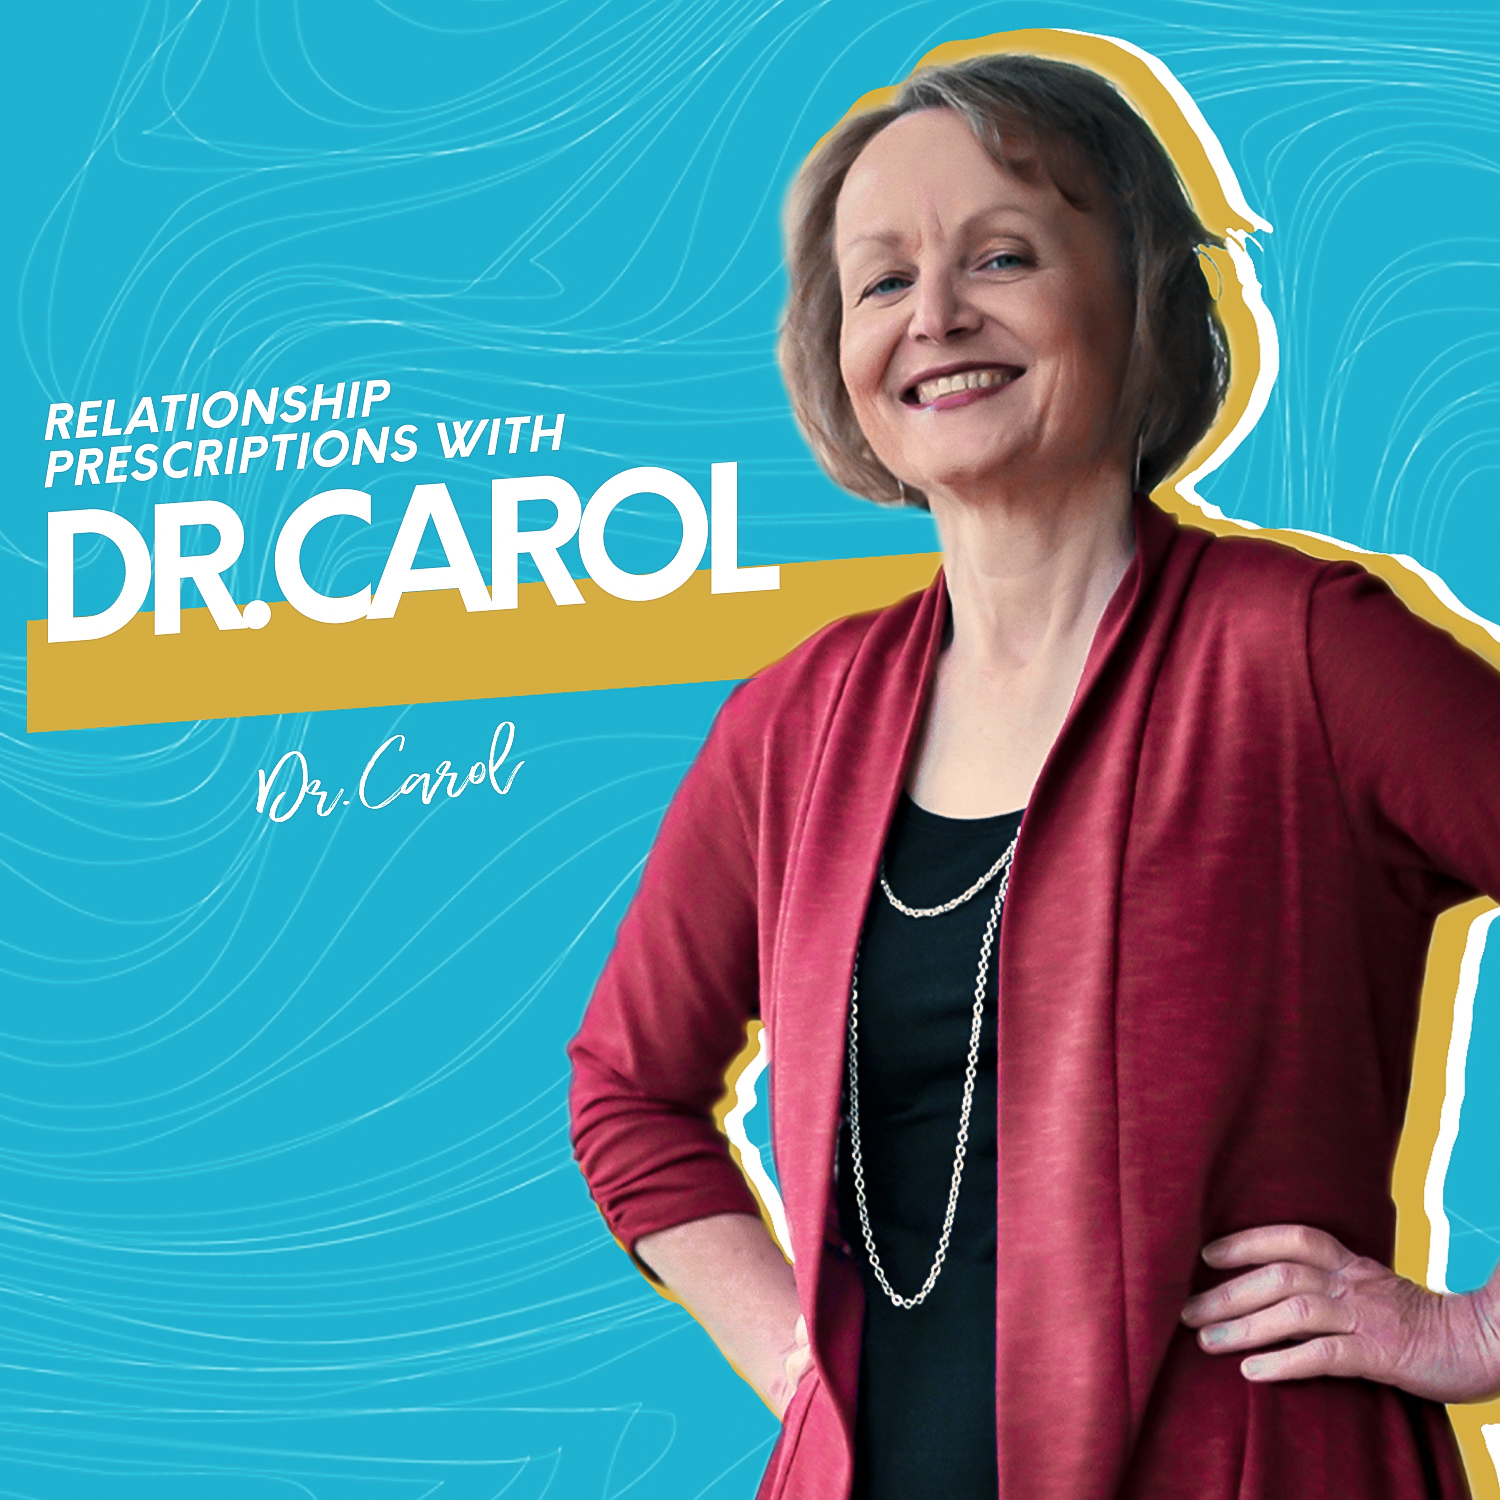 Relationship Prescriptions with Dr. Carol - How Audacious Generosity Can Change Your Life and Relationships